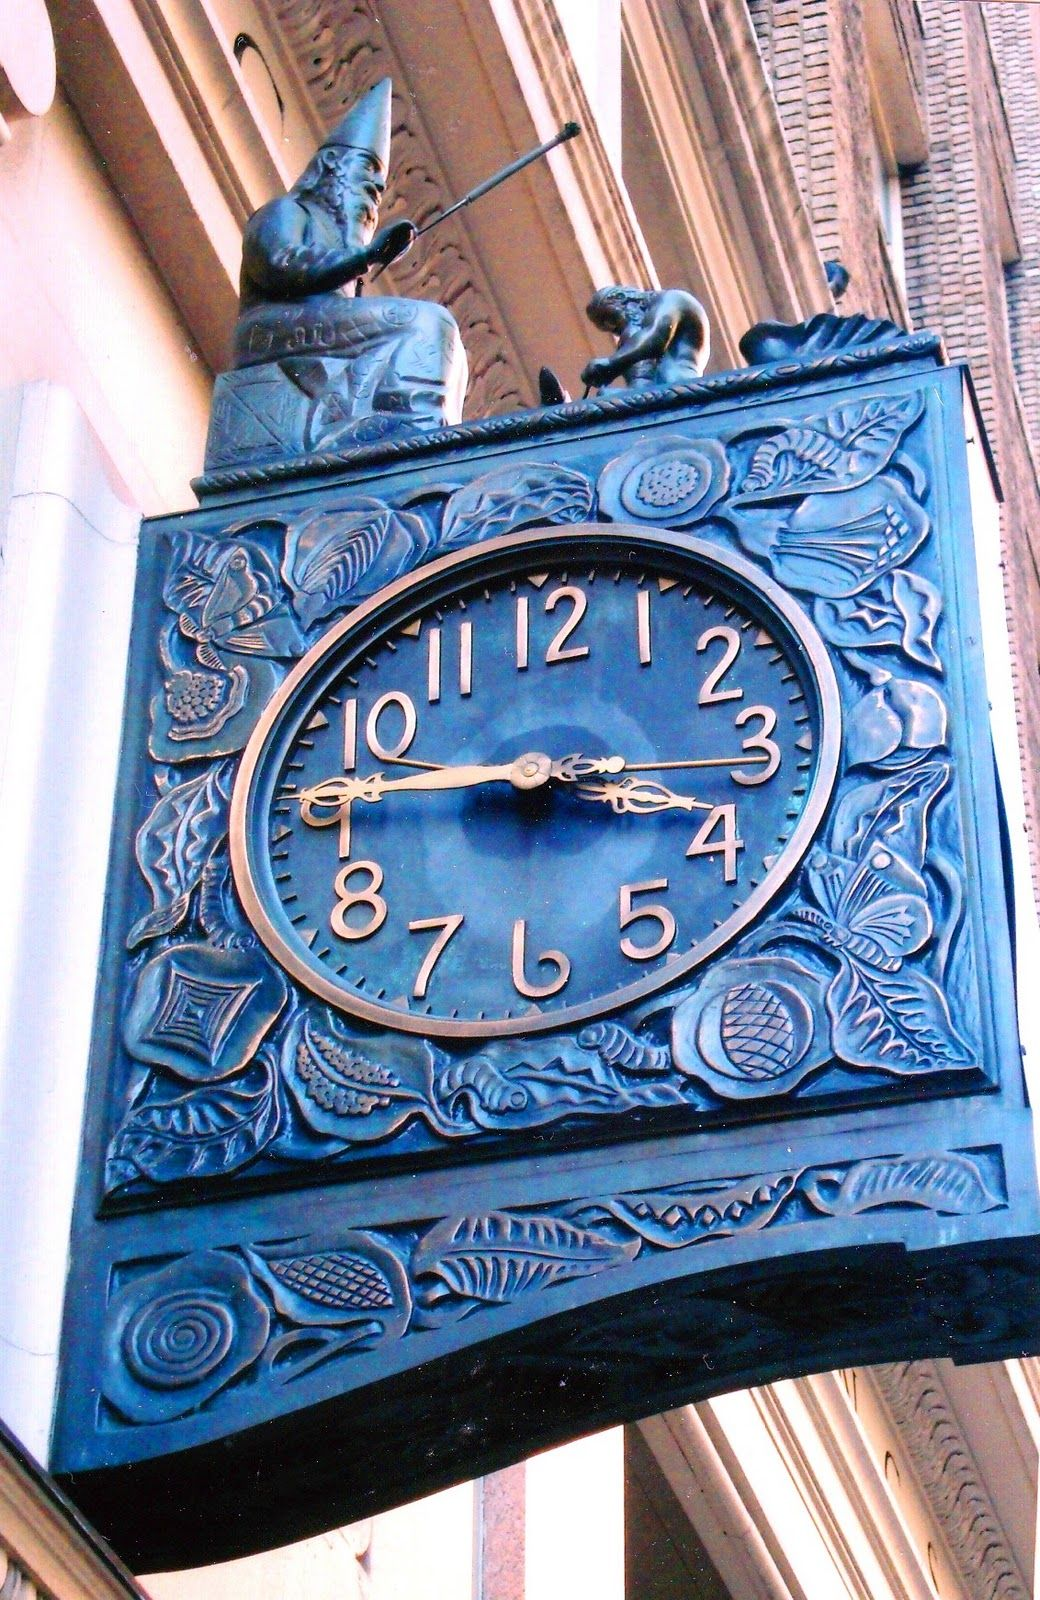 Merlin raises his wandtolightly rapthe blacksmith who is pounding away on King Arthur's sword,and the Lady of the Lakearises from the case. Known as the Silk Clock,the workwas manufactured in 1926 by Seth Thomas.